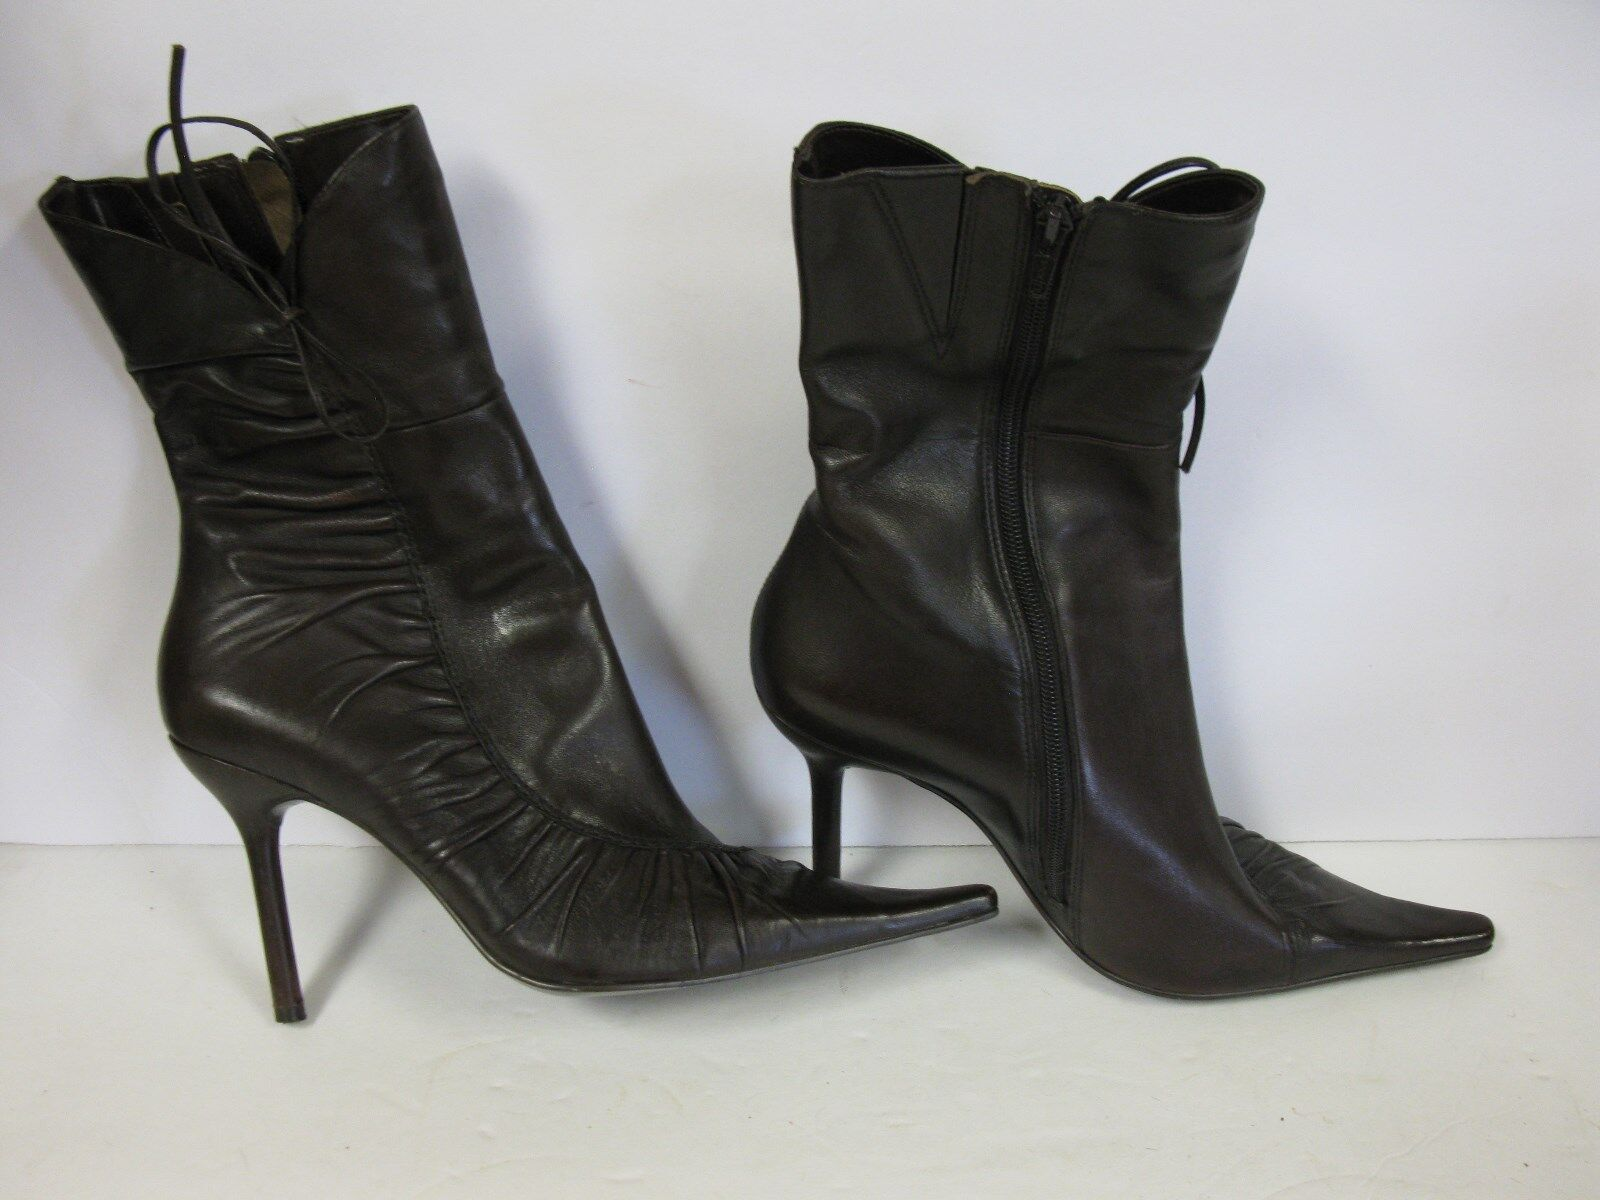 Bakers Brown Leather Zip Up Pointy toe Dress Boots 10